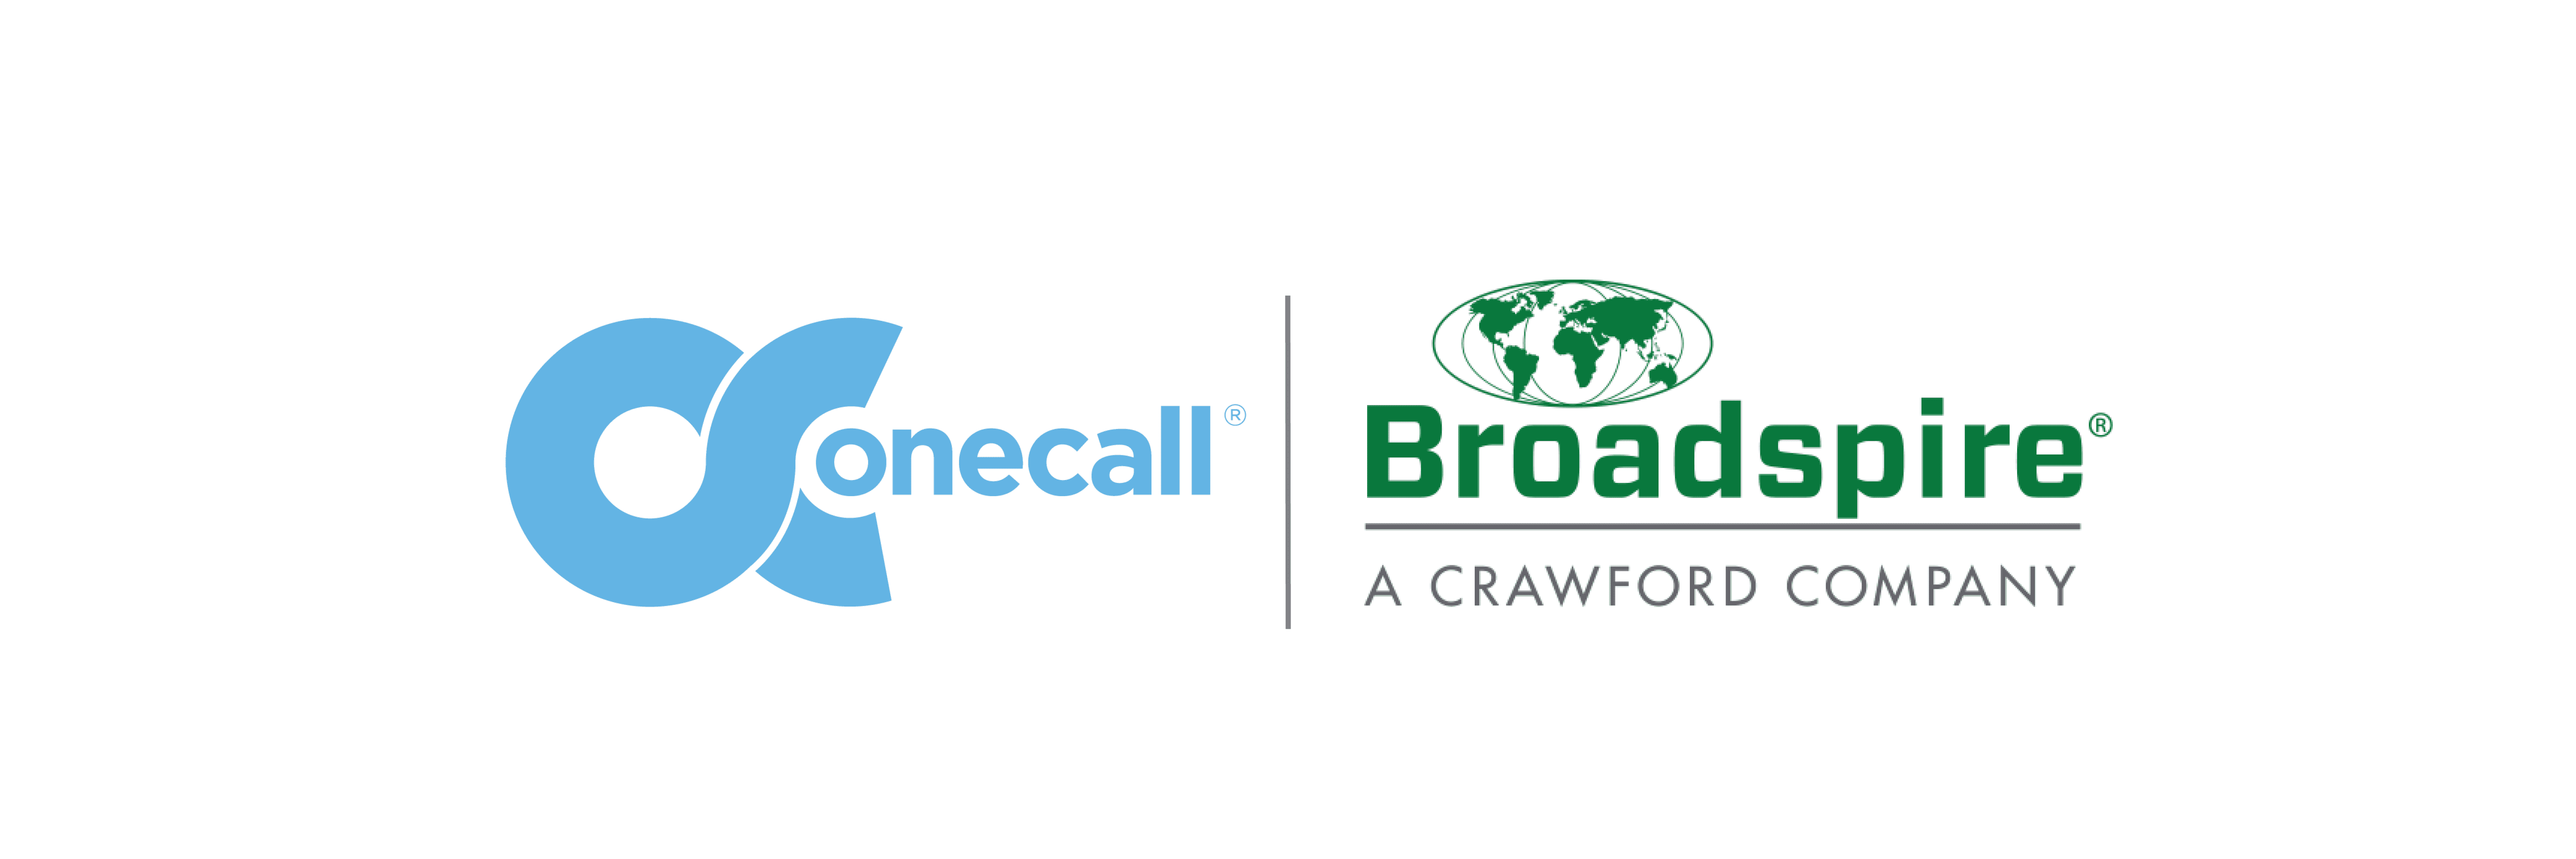 One Call Announces New Wound Resource Program with Broadspire